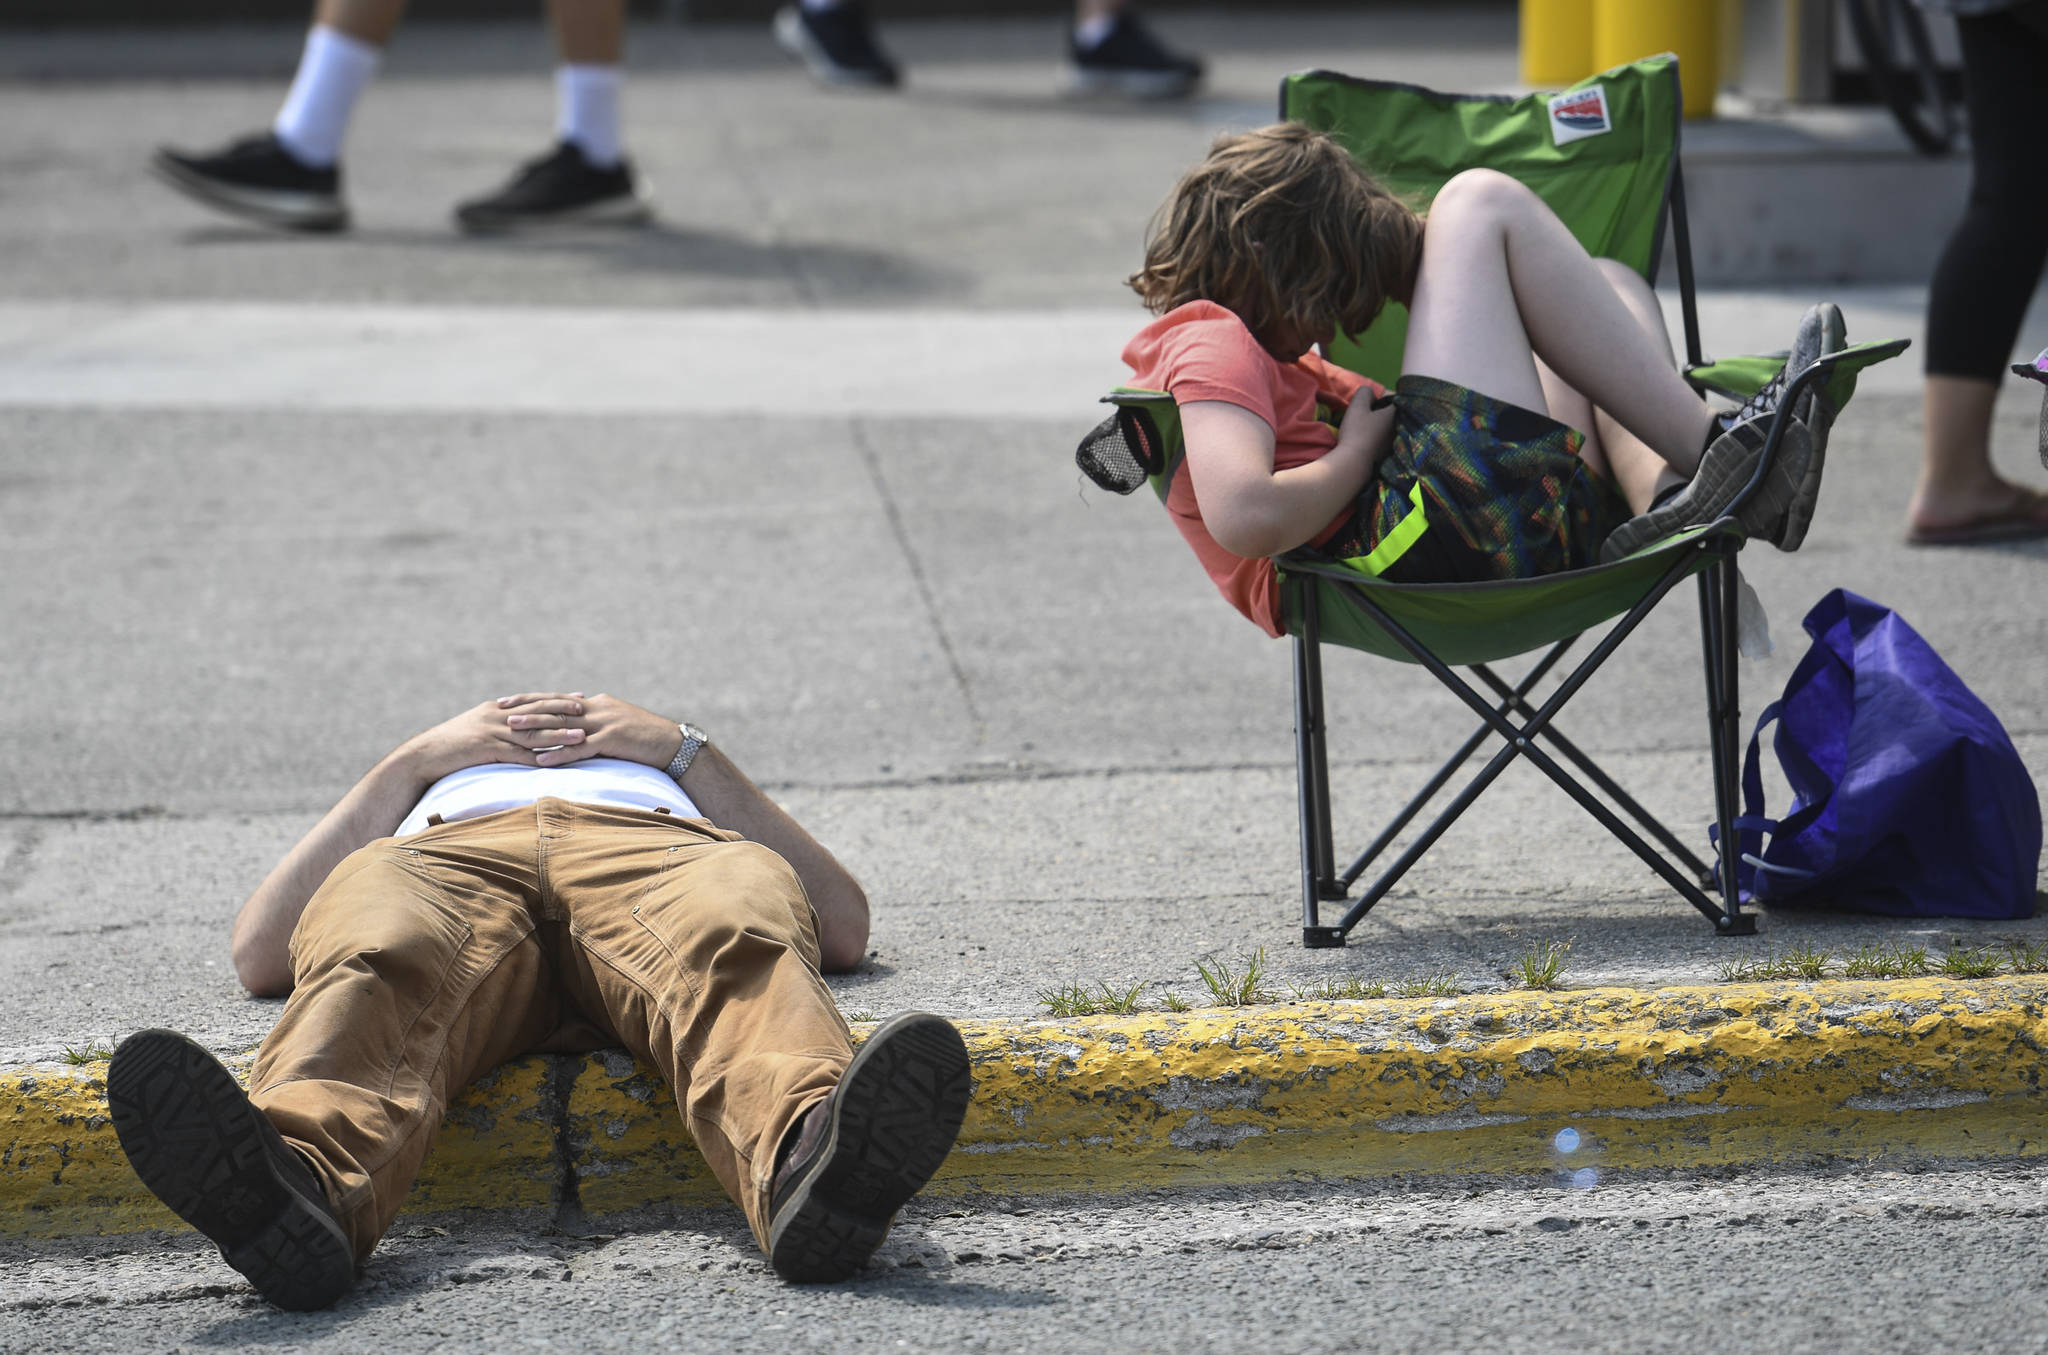 People wait in the heat for the Douglas Fourth of July Parade to start on Thursday, July 4, 2019. (Michael Penn | Juneau Empire)